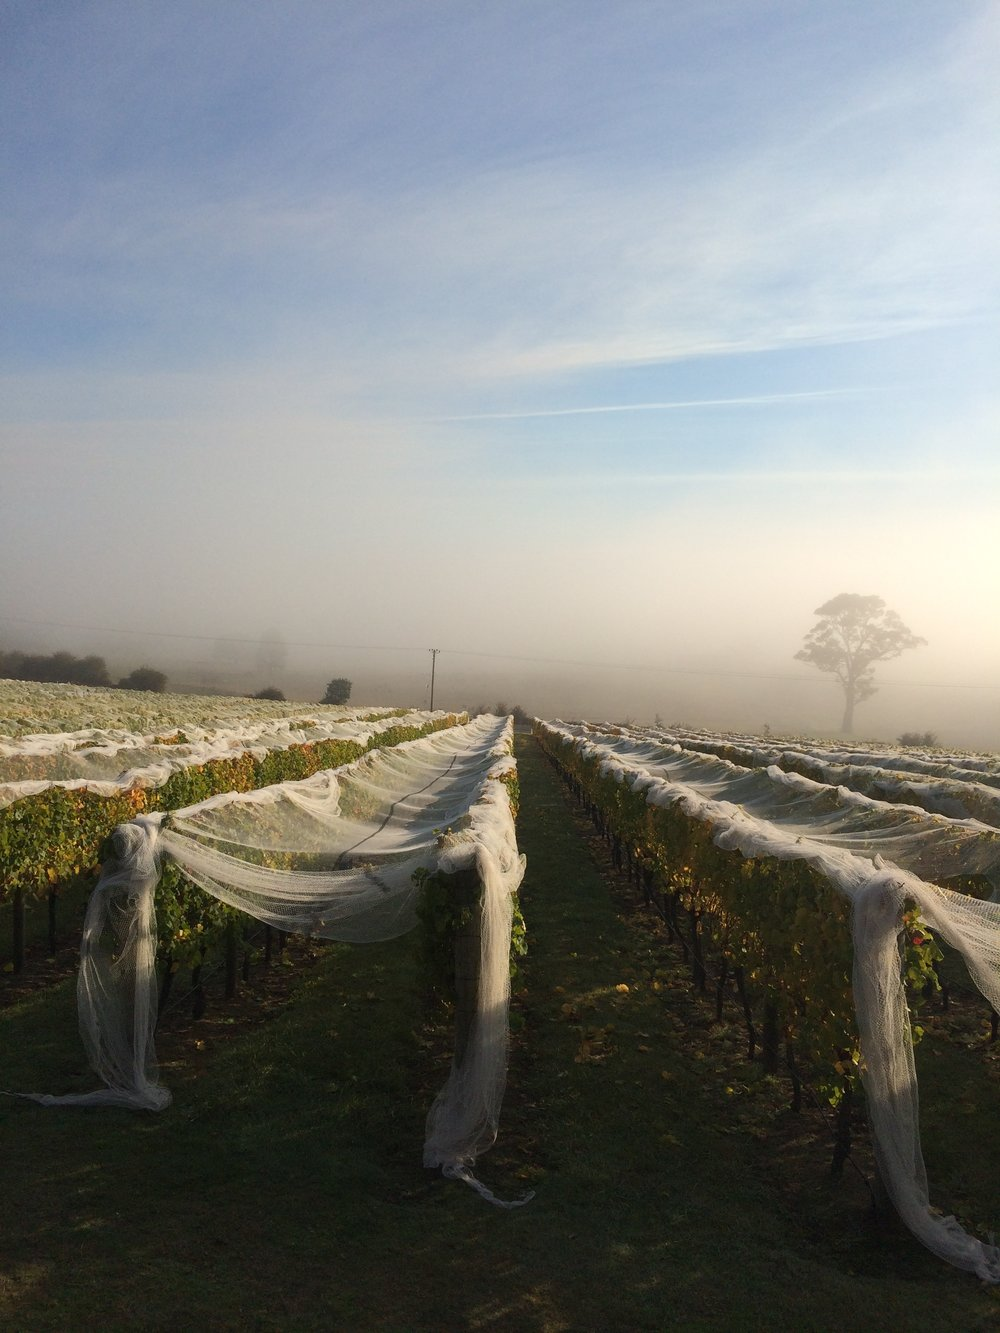 Foggy mornings lead to a bright sunshiny day. Warm, dry conditions with only afew days rain made picking decisions easier this vintage compared to other years.